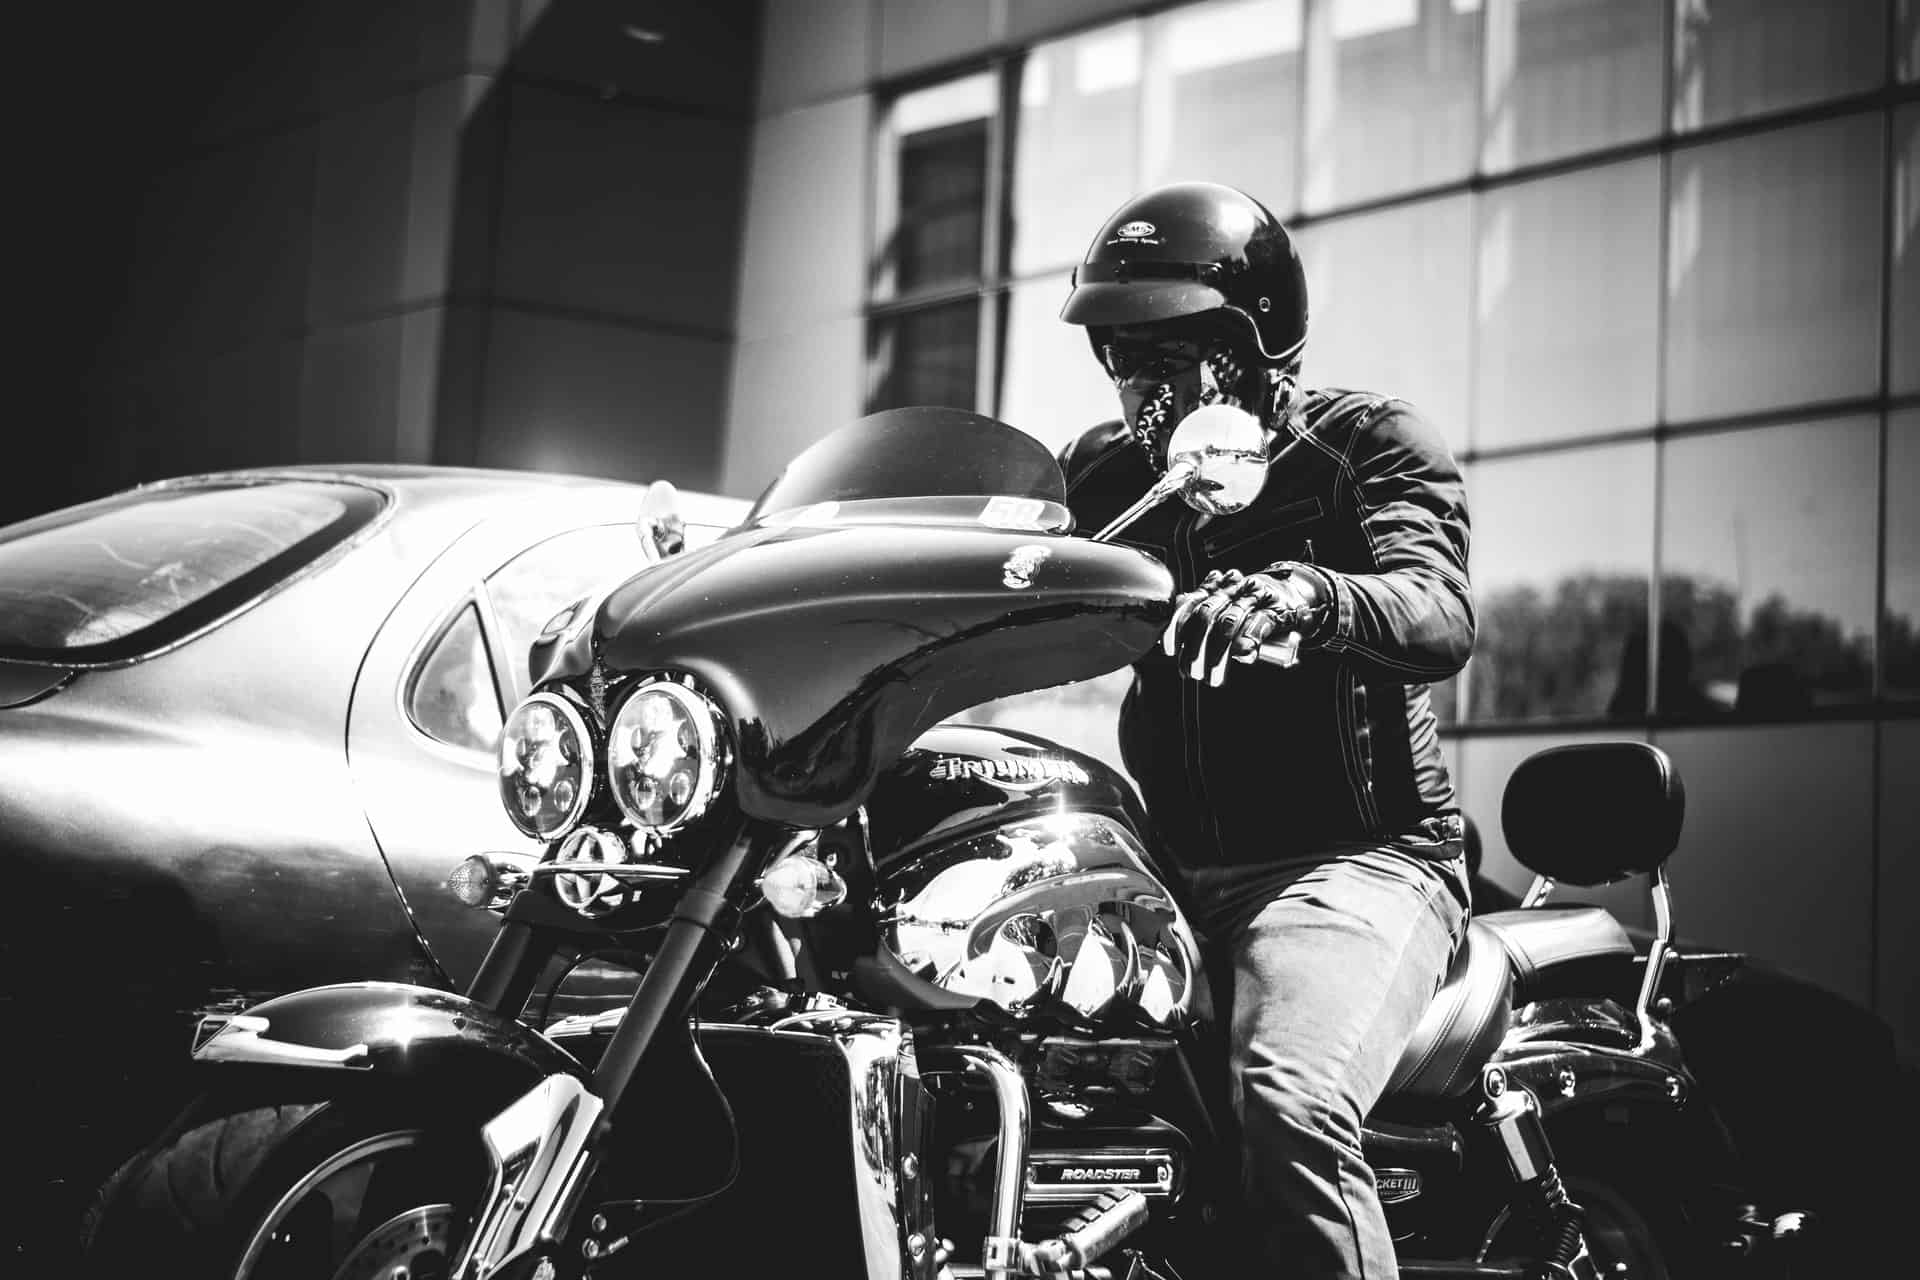 monochrome motorcycle wearing glasses